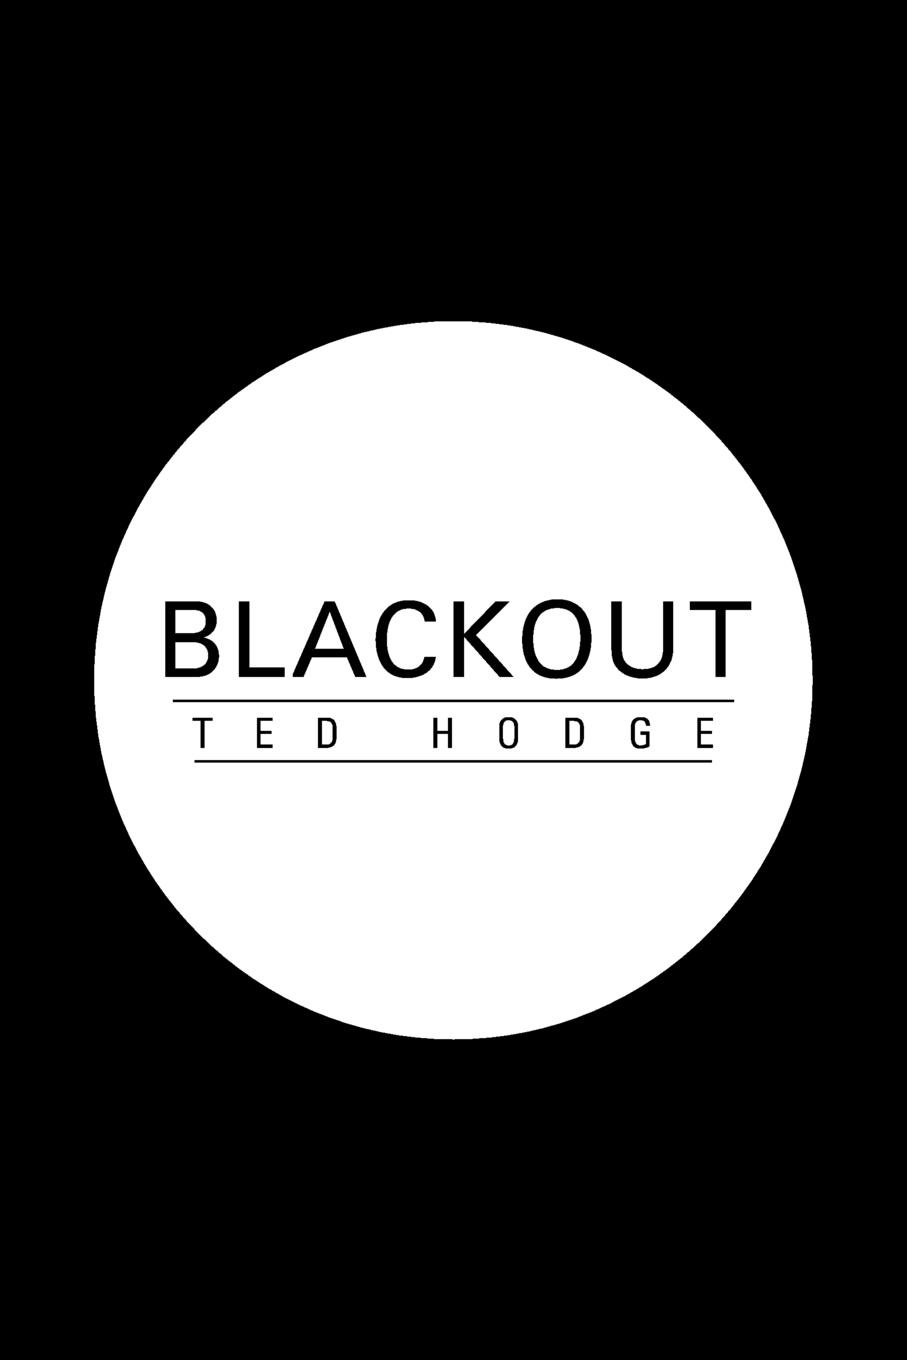 Ted d Hodge Blackout термокружка blackout track